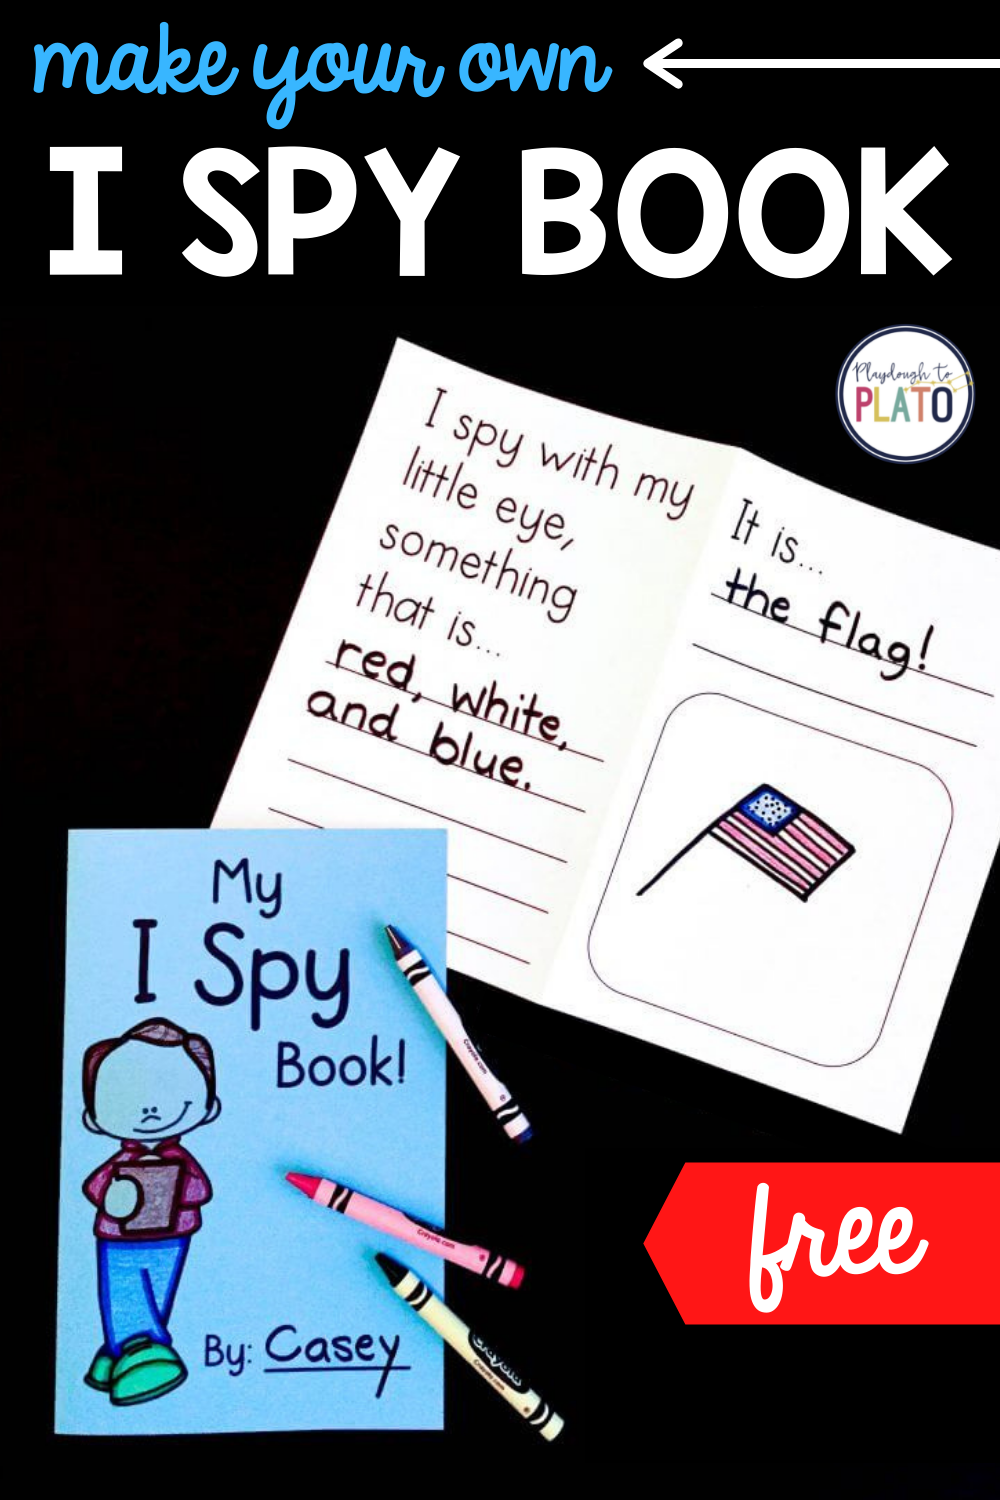 Make Your Own I Spy Book